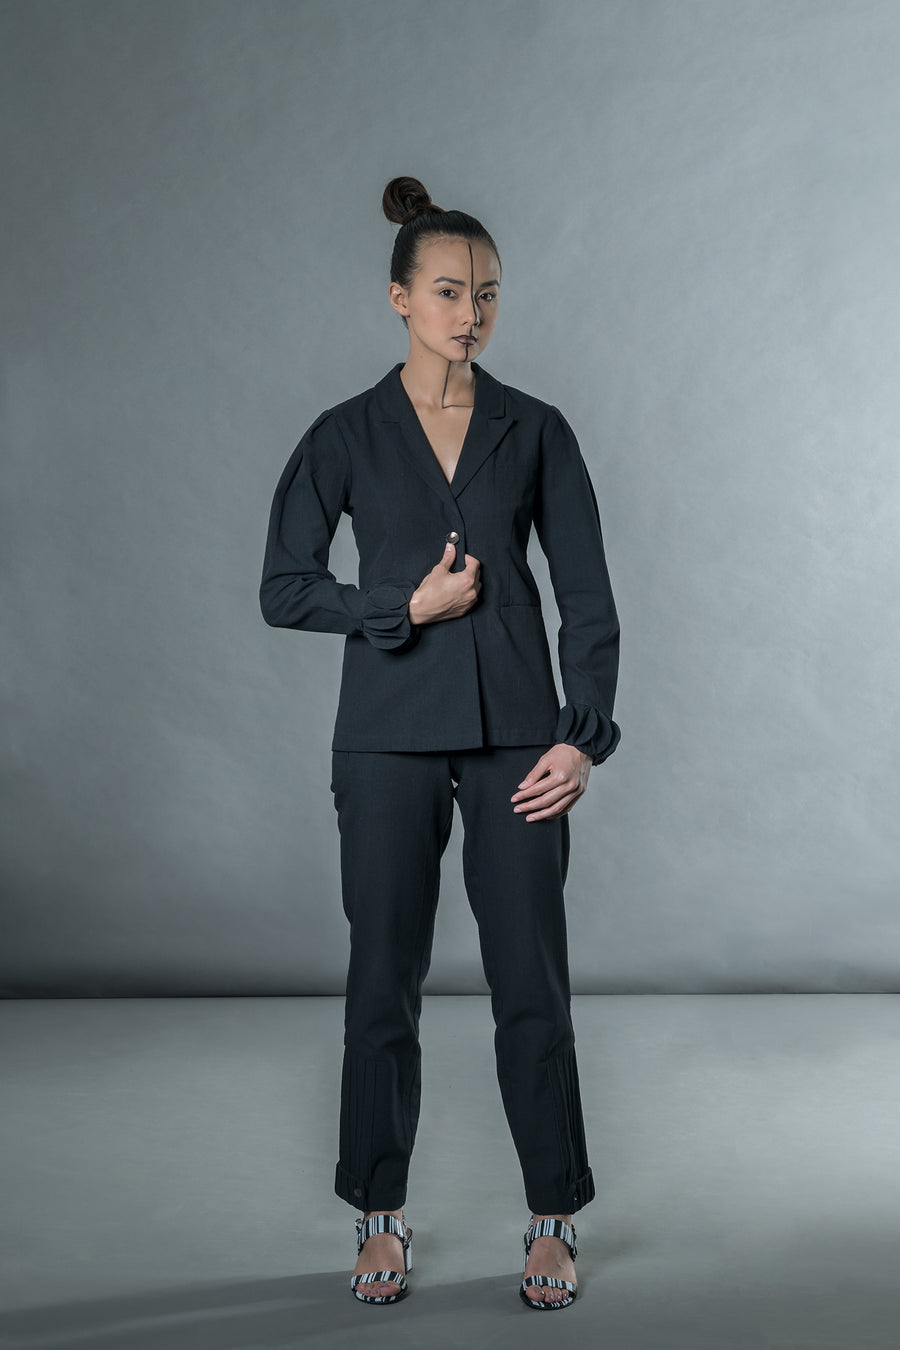 Black Jacket with Origami - Ethical made fashion - onlyethikal